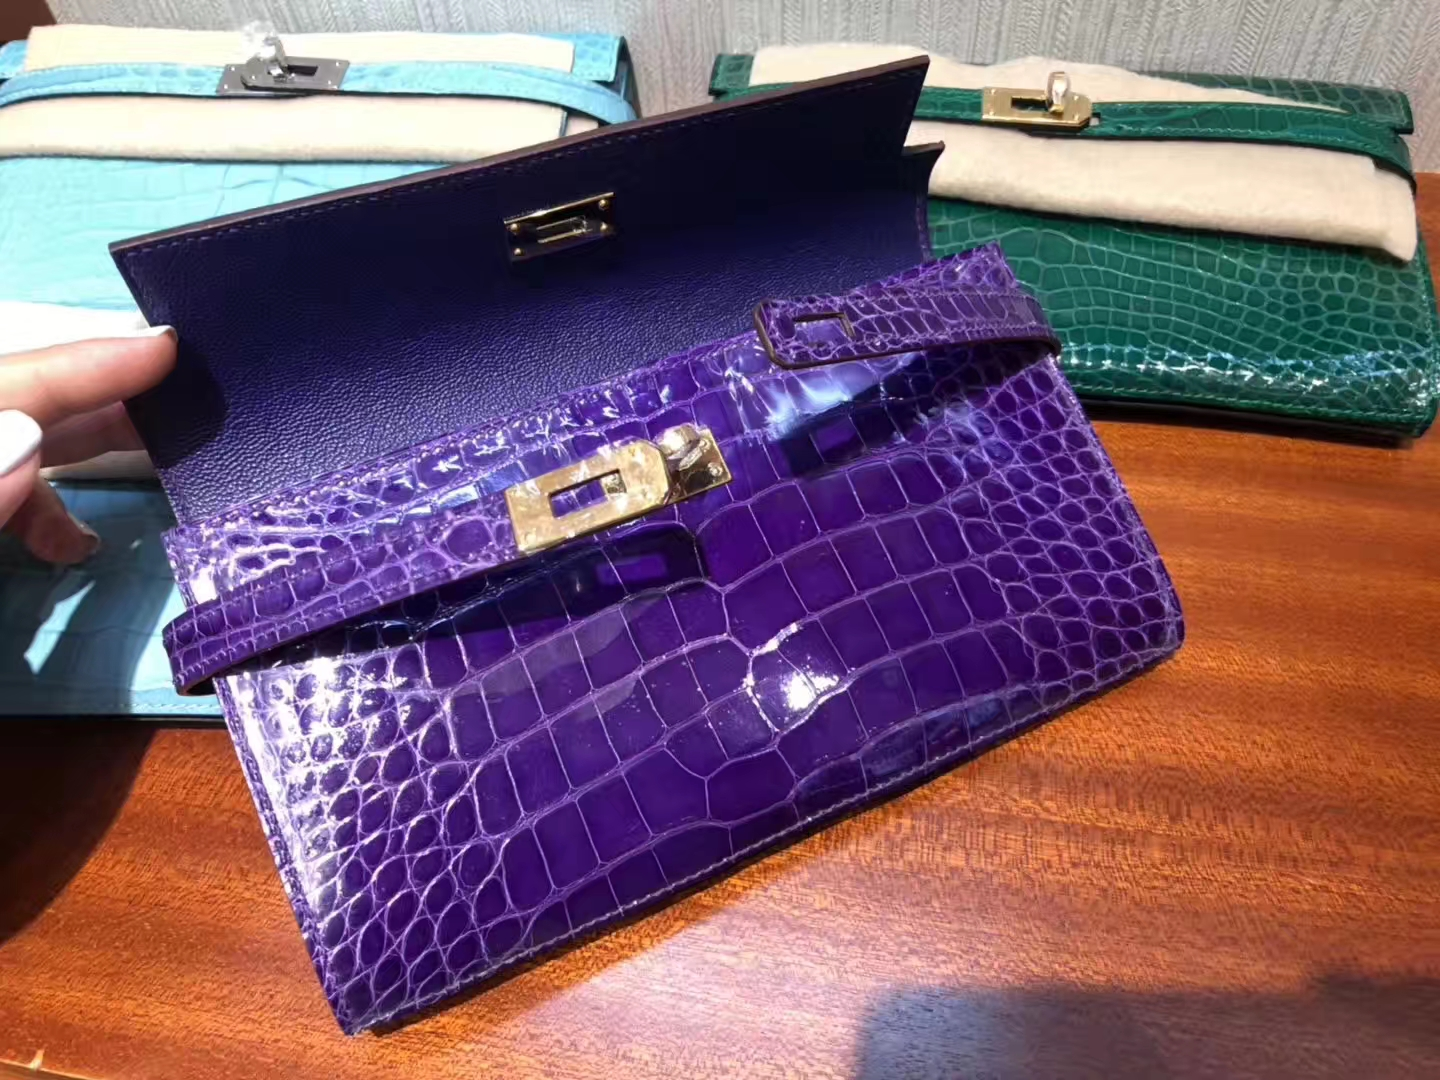 Luxury Hermes Shiny Crocodile Kelly Wallet Clutch Bag in 5L Ultraviolet Gold Hardware